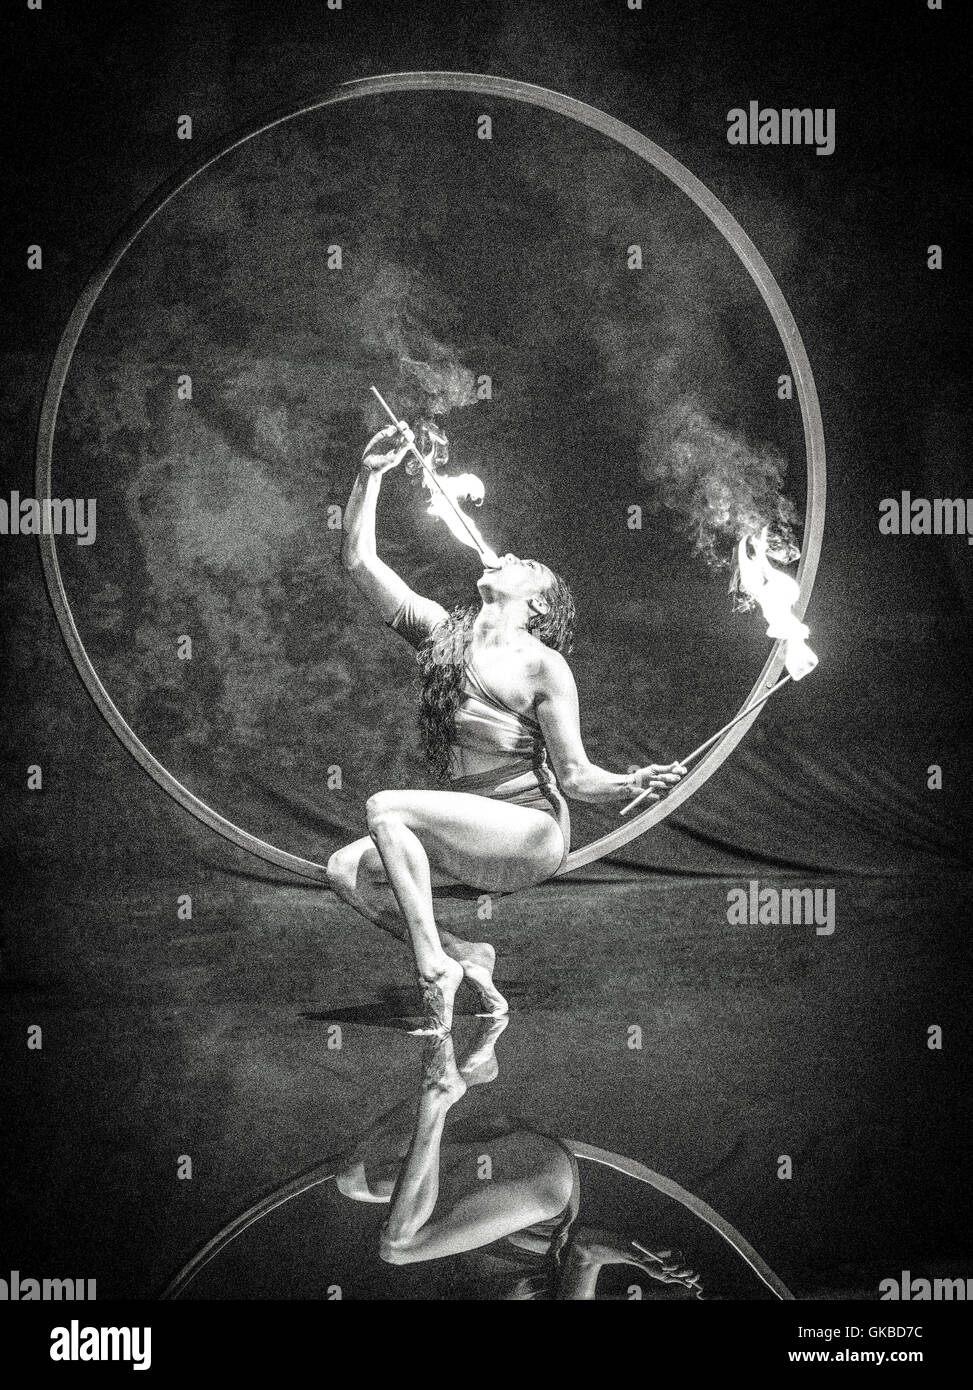 Fire-eating woman sitting on a floating ring above a reflection pool - Stock Image